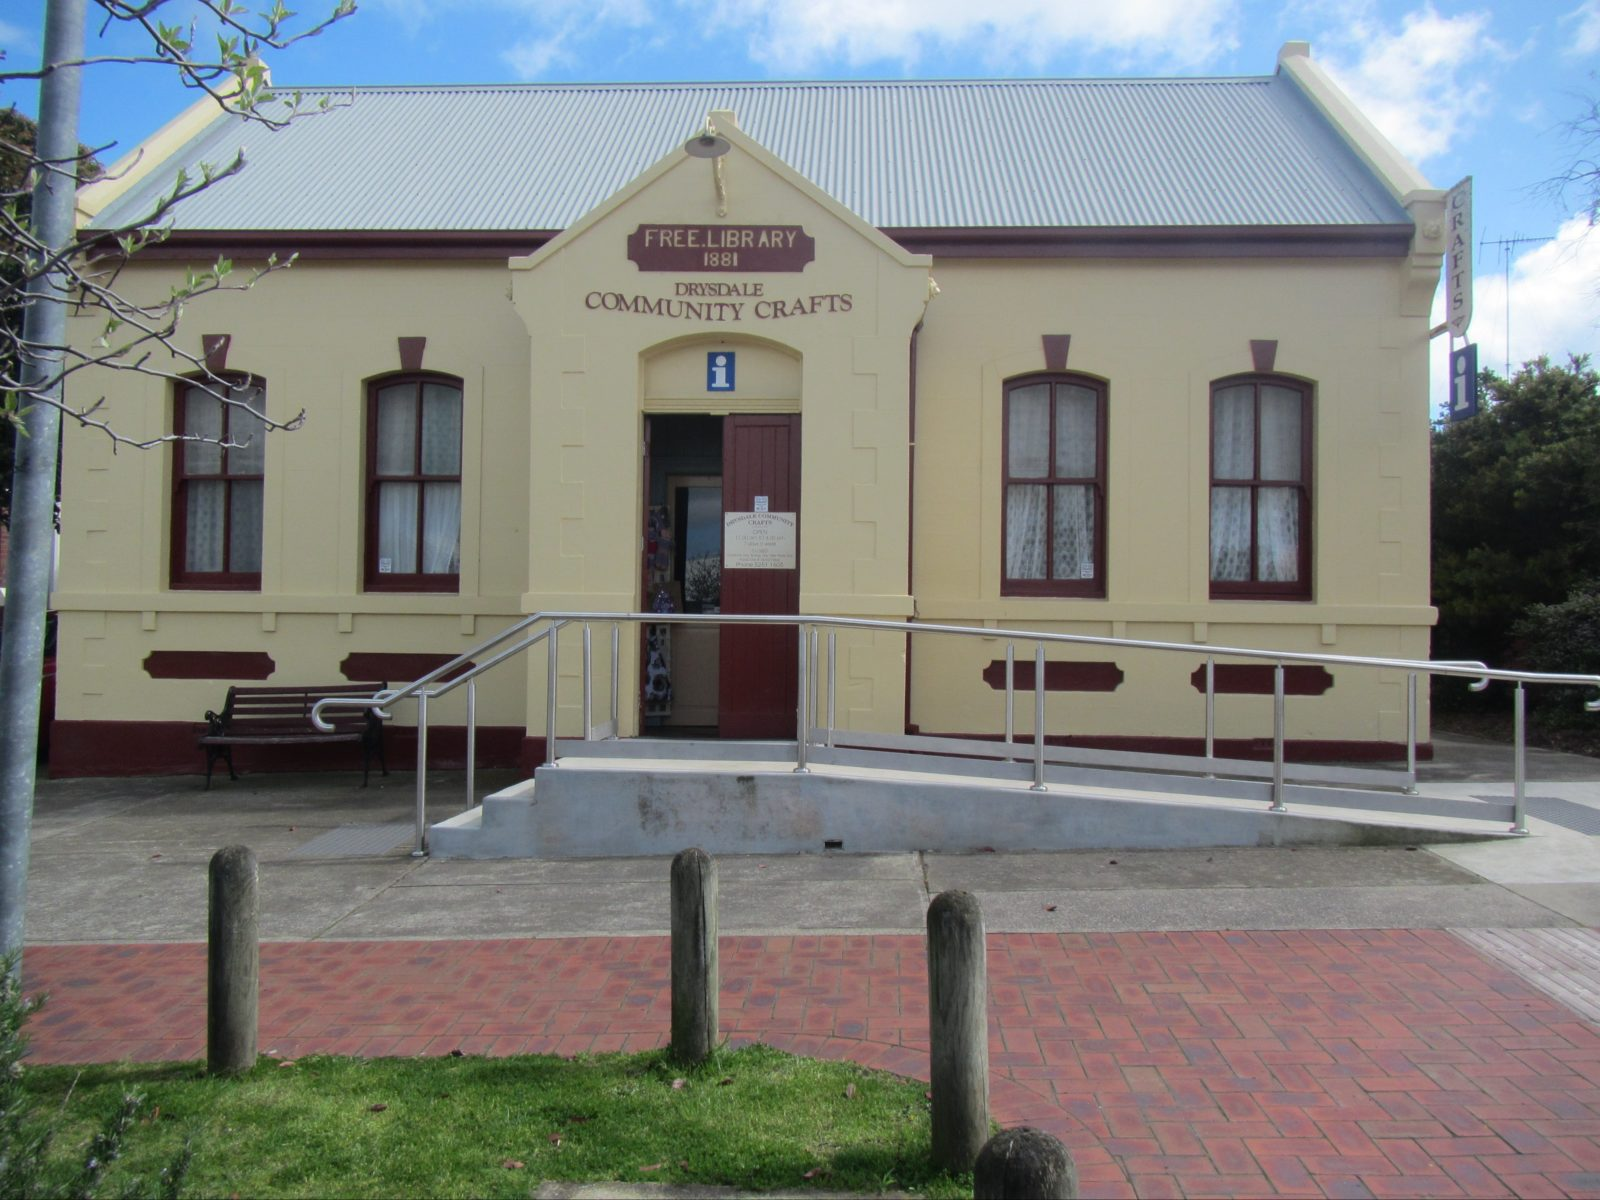 Drysdale Community Craft Shop